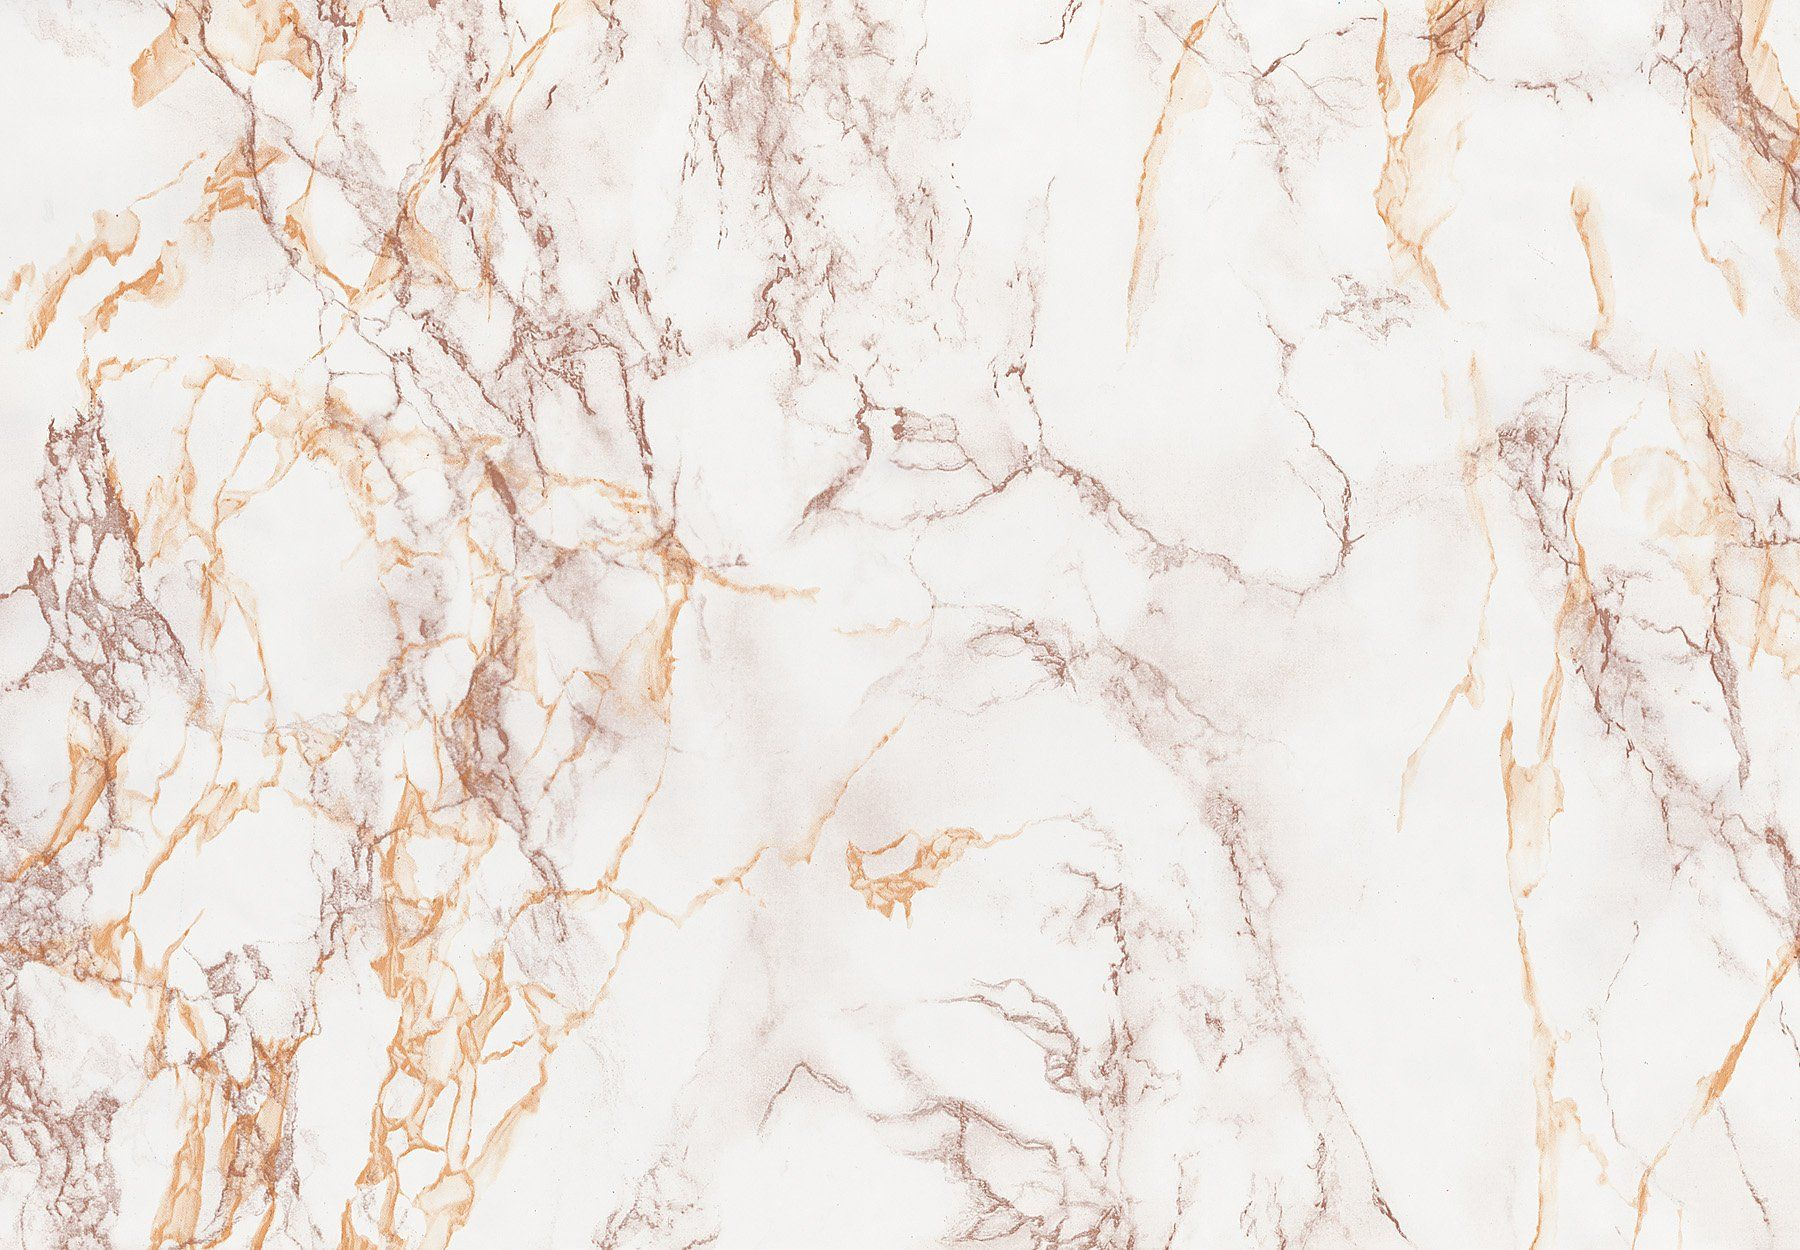 Dc Fix 346 0120 Adhesive Film Brown Gold Marble Counters Too Currently Sold Out But Still Gold Marble Wallpaper Rose Gold Wallpaper Marble Wallpaper